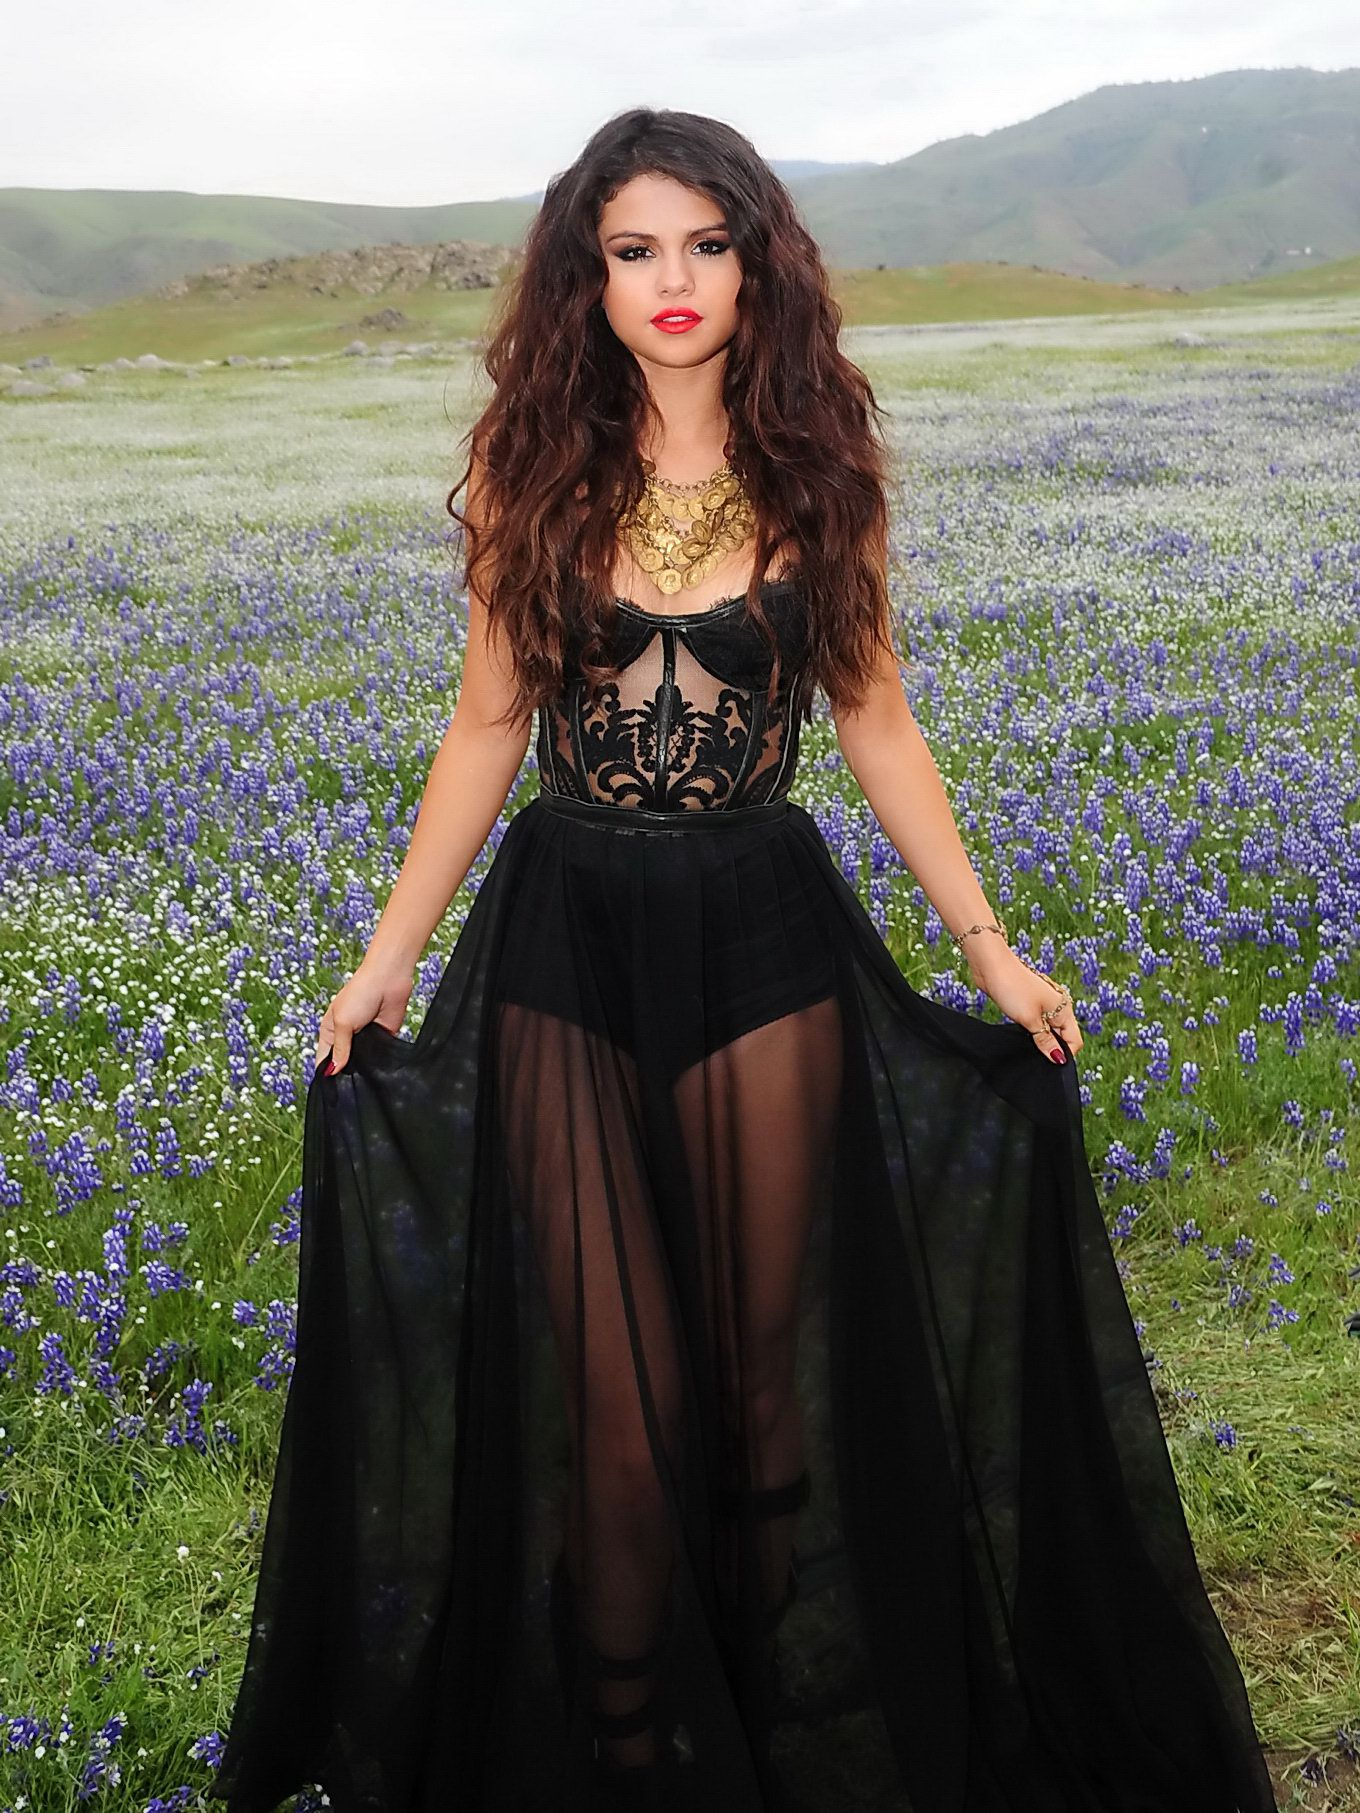 Selena Gomez see-through to underwear while filming new music video ...